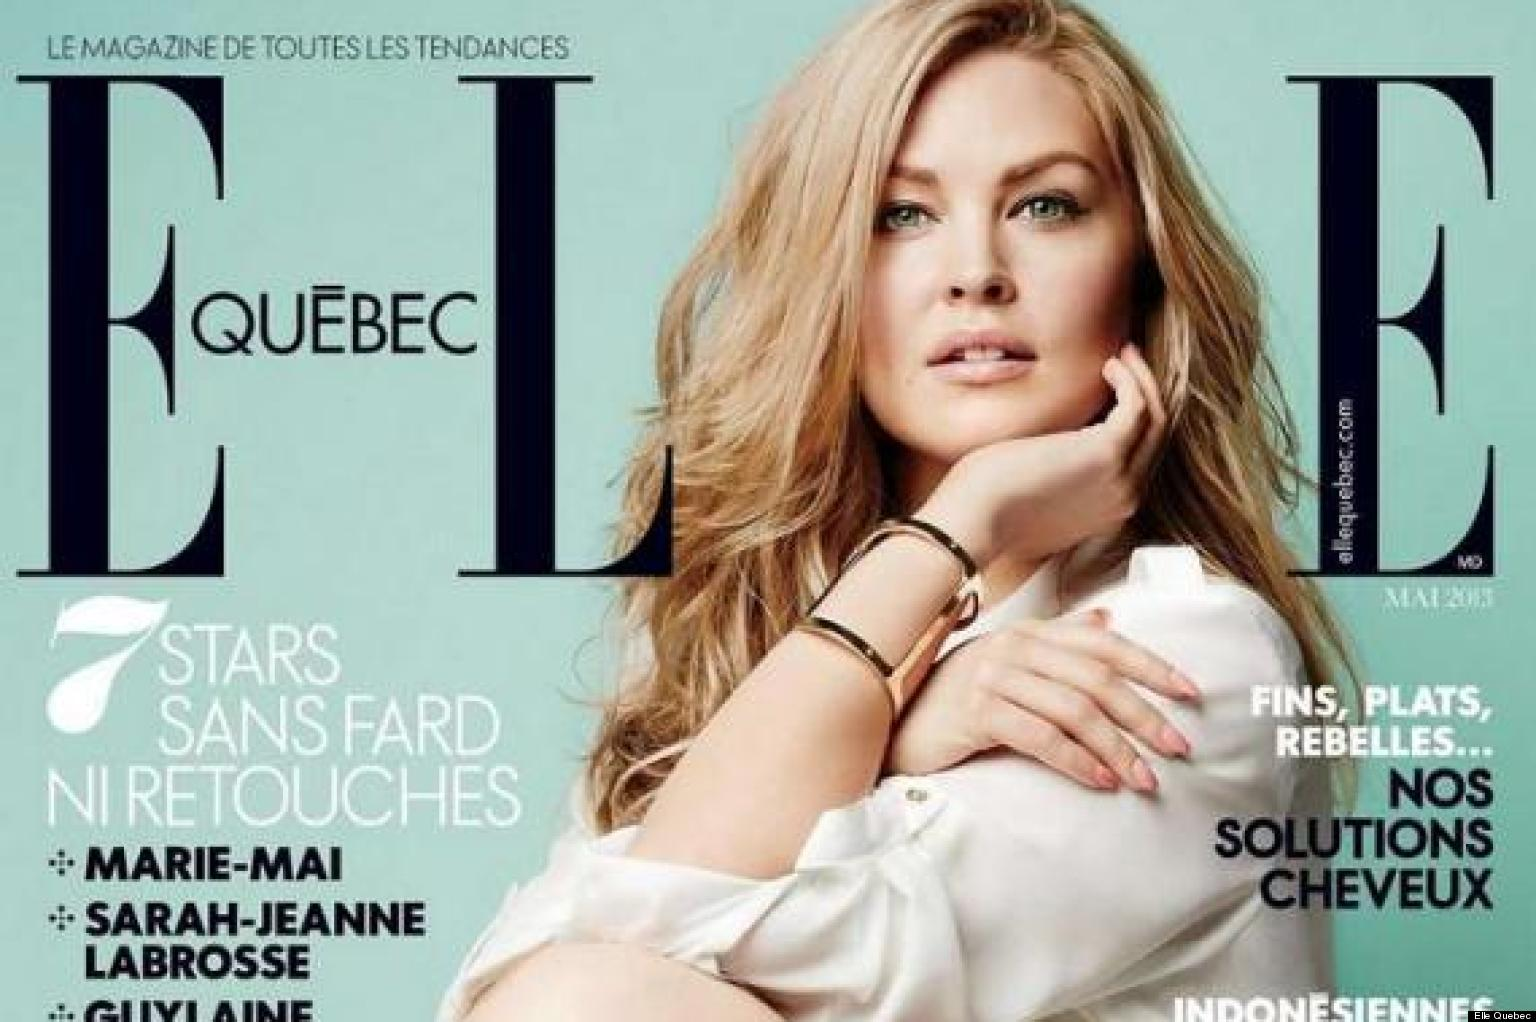 Elle Plus Size Model Elle Quebec Features Plus-size